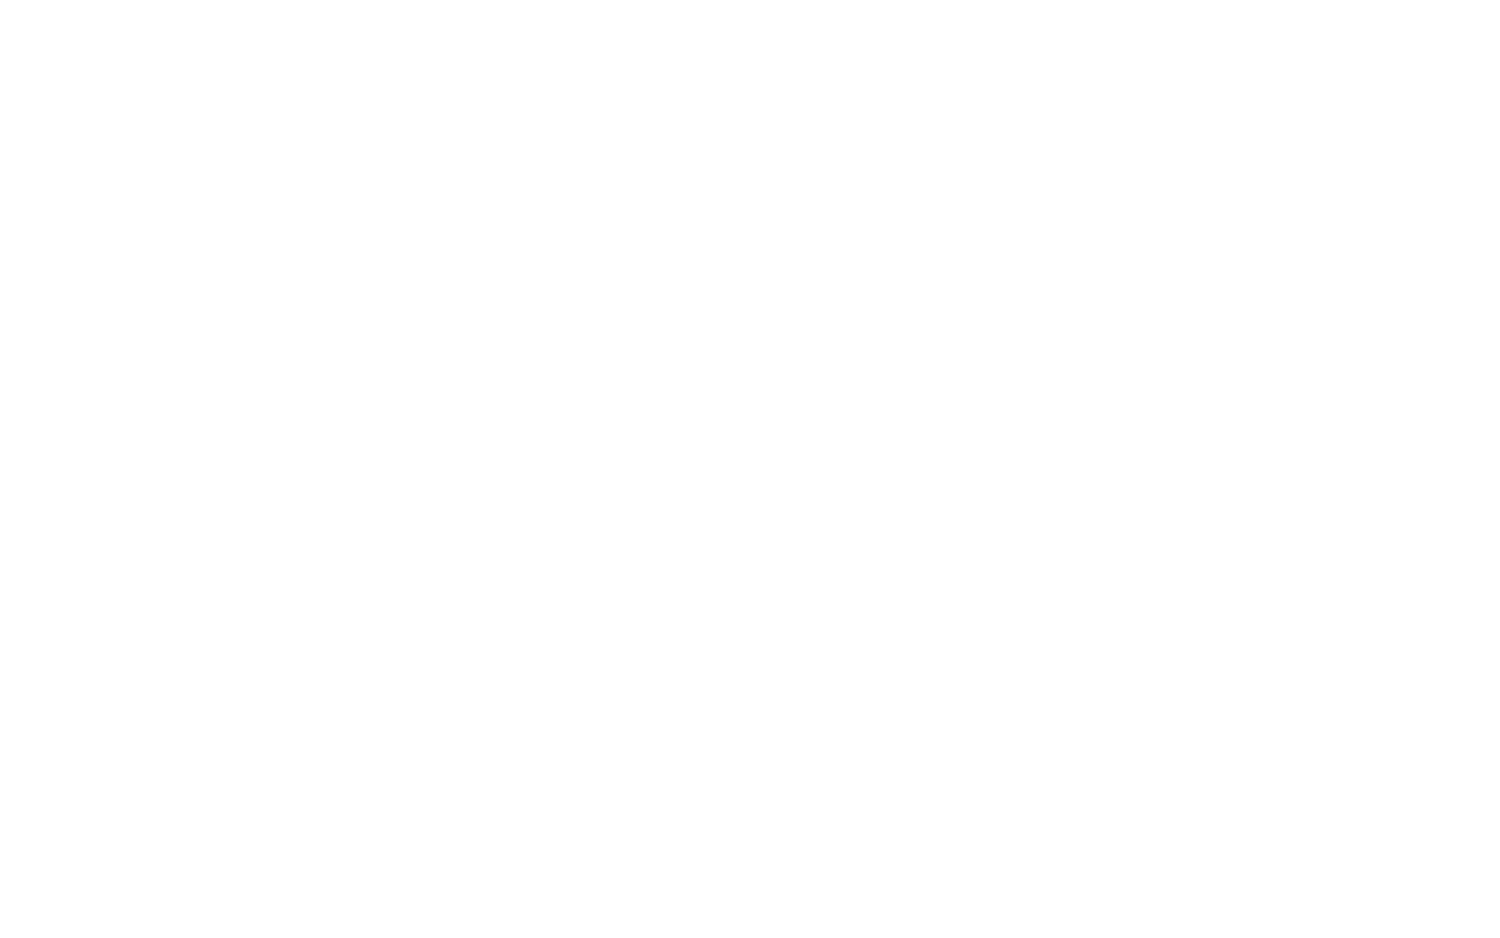 ANTHONY PAUL PHOTOGRAPHY